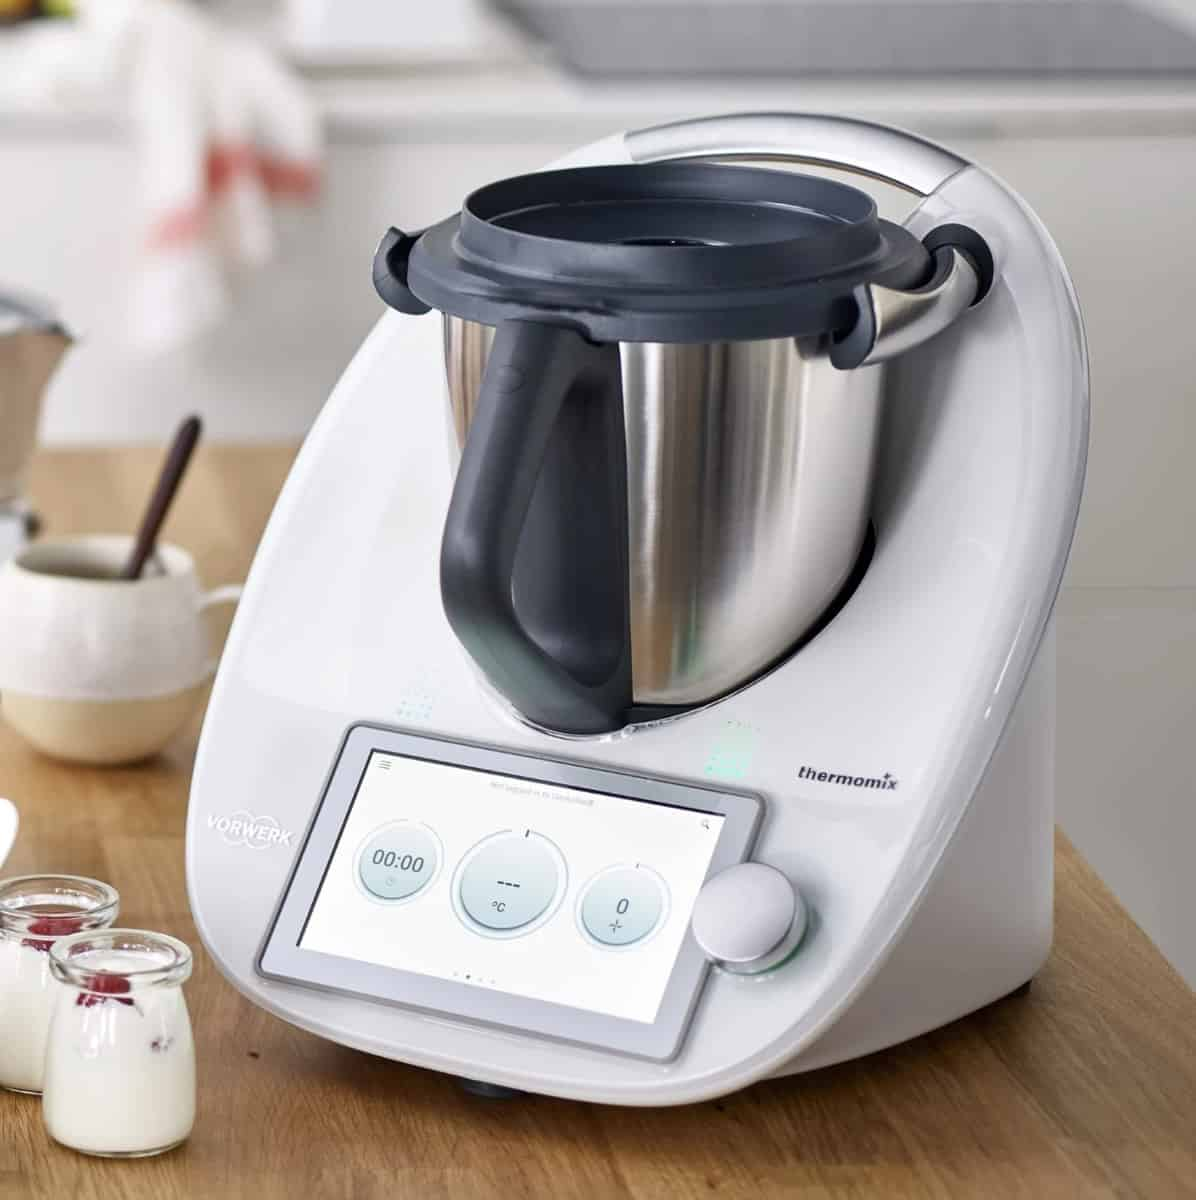 A Thermomix TM6 machine sitting on a kitchen bench.